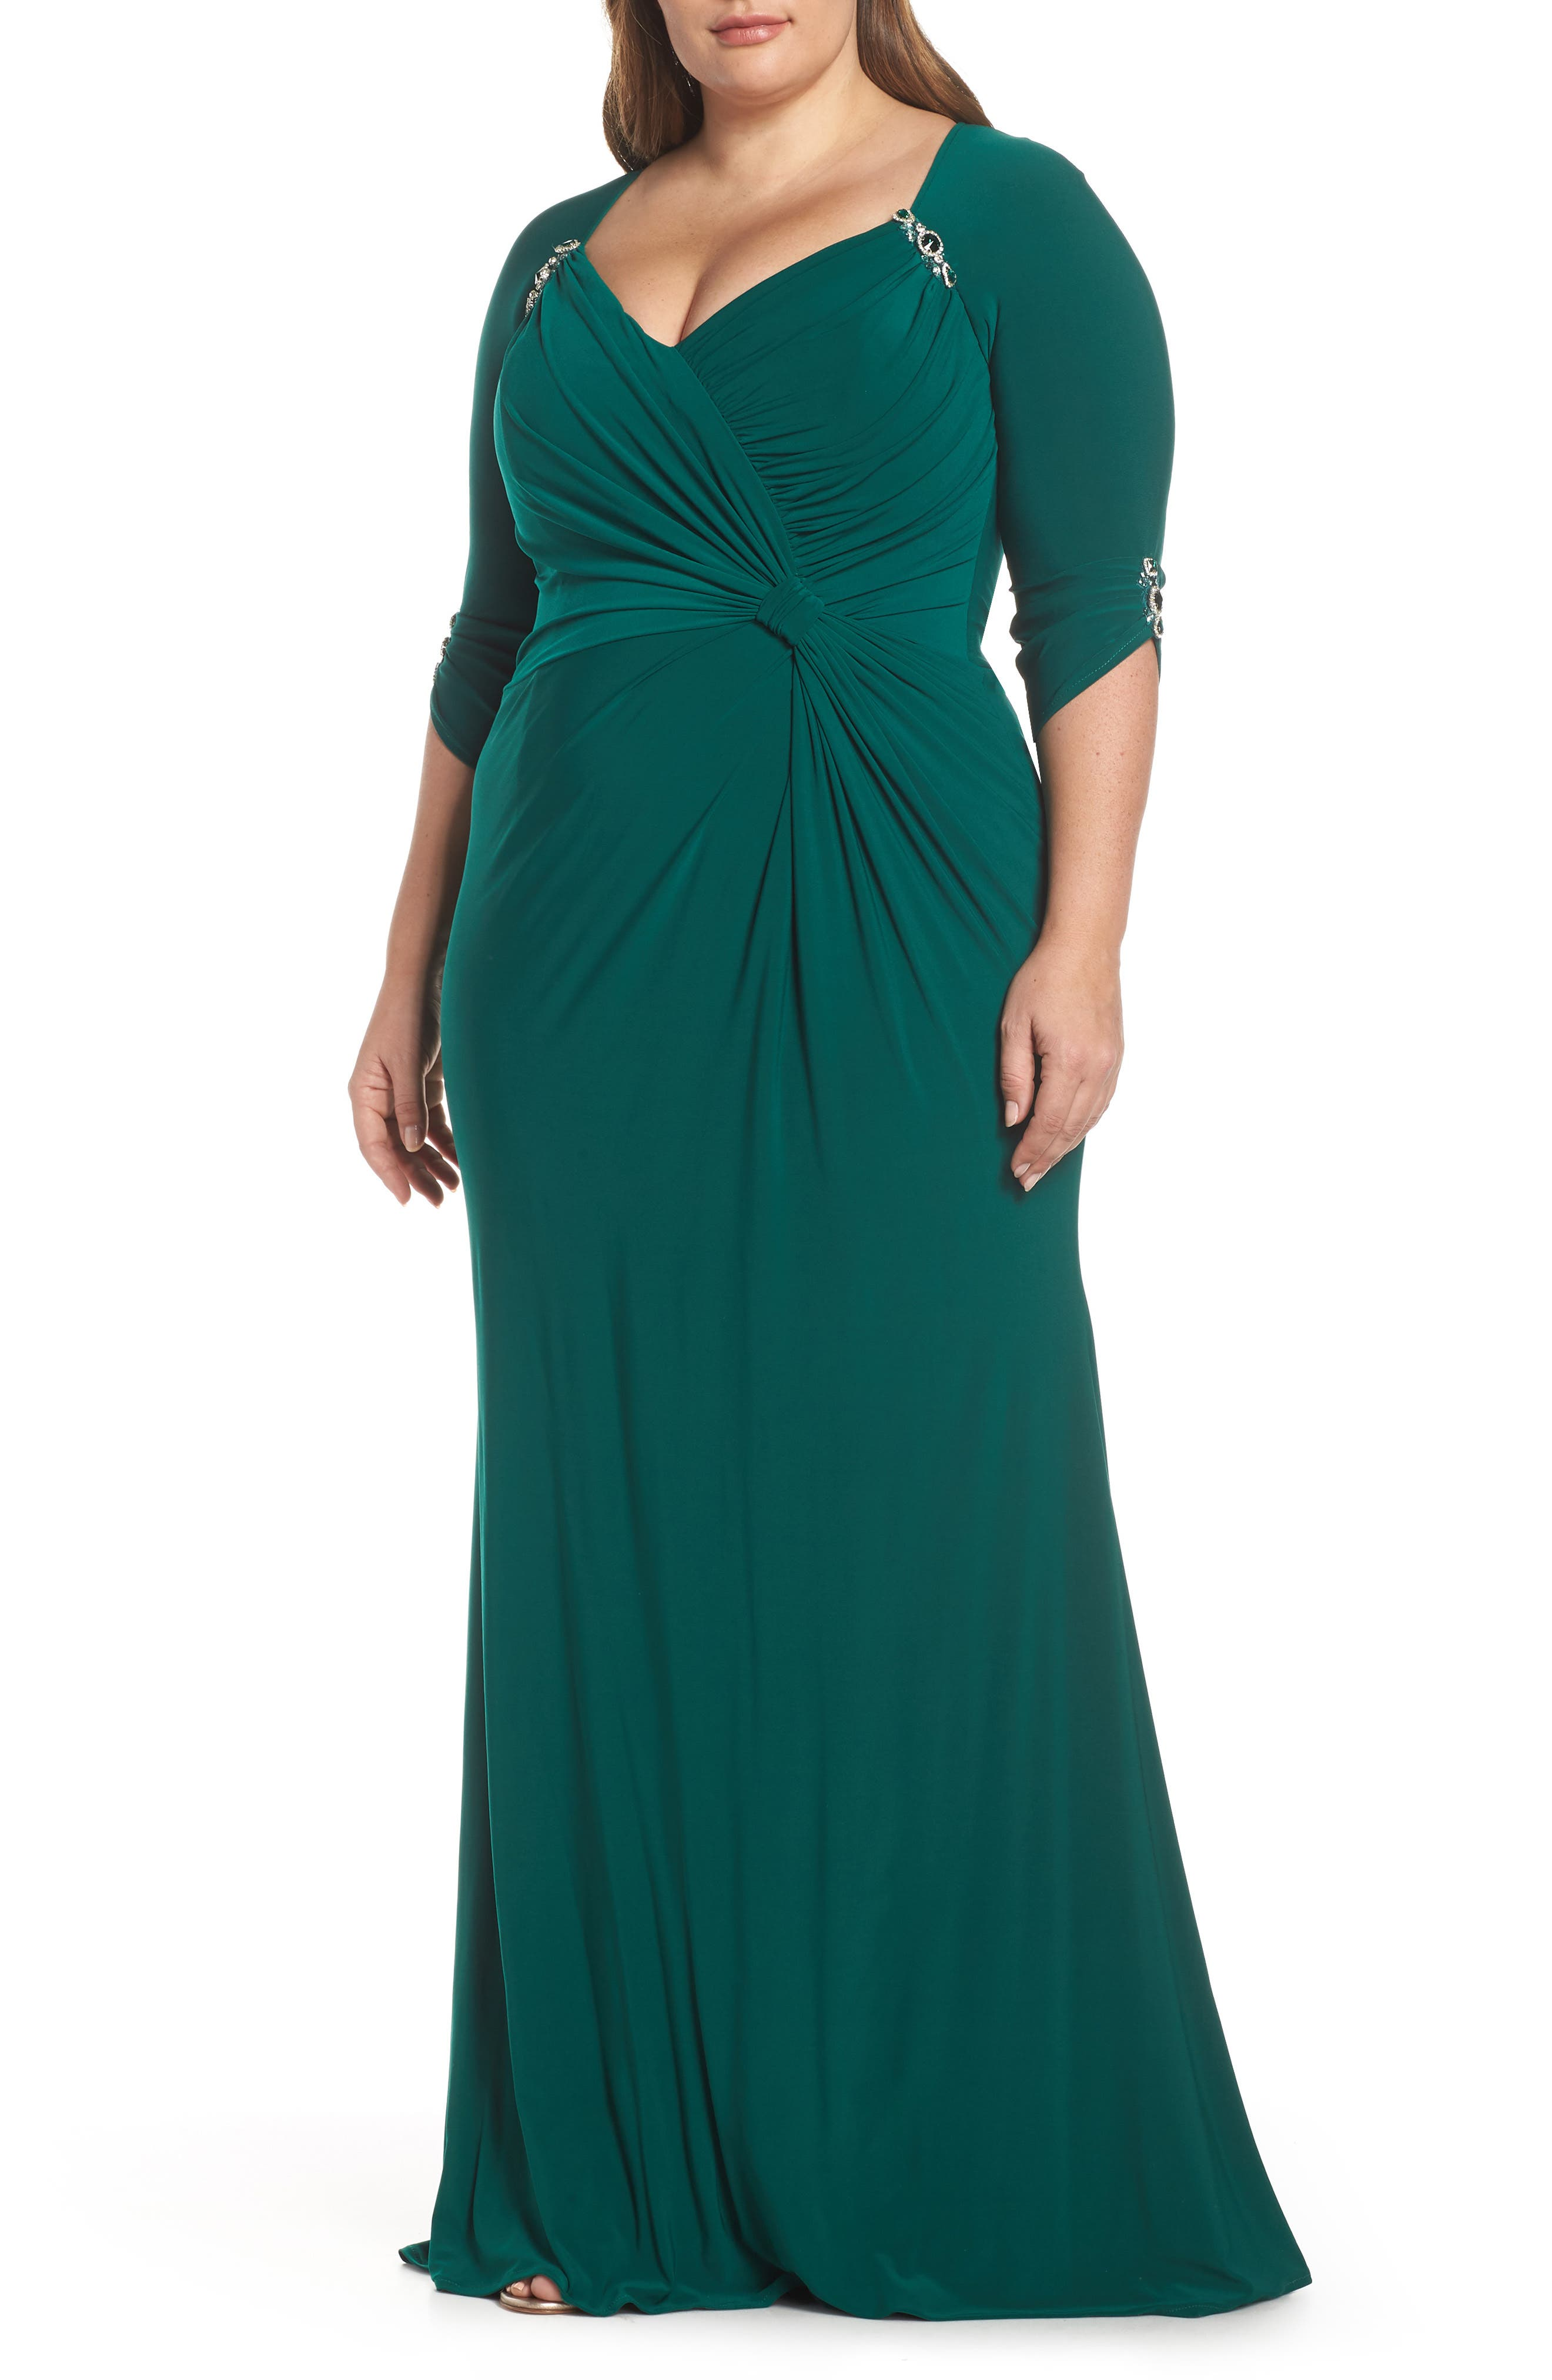 1940s Evening, Prom, Party, Formal, Ball Gowns Plus Size Womens MAC Duggal Crystal Embellished Twist Front Evening Dress Size 18W - Green $398.00 AT vintagedancer.com